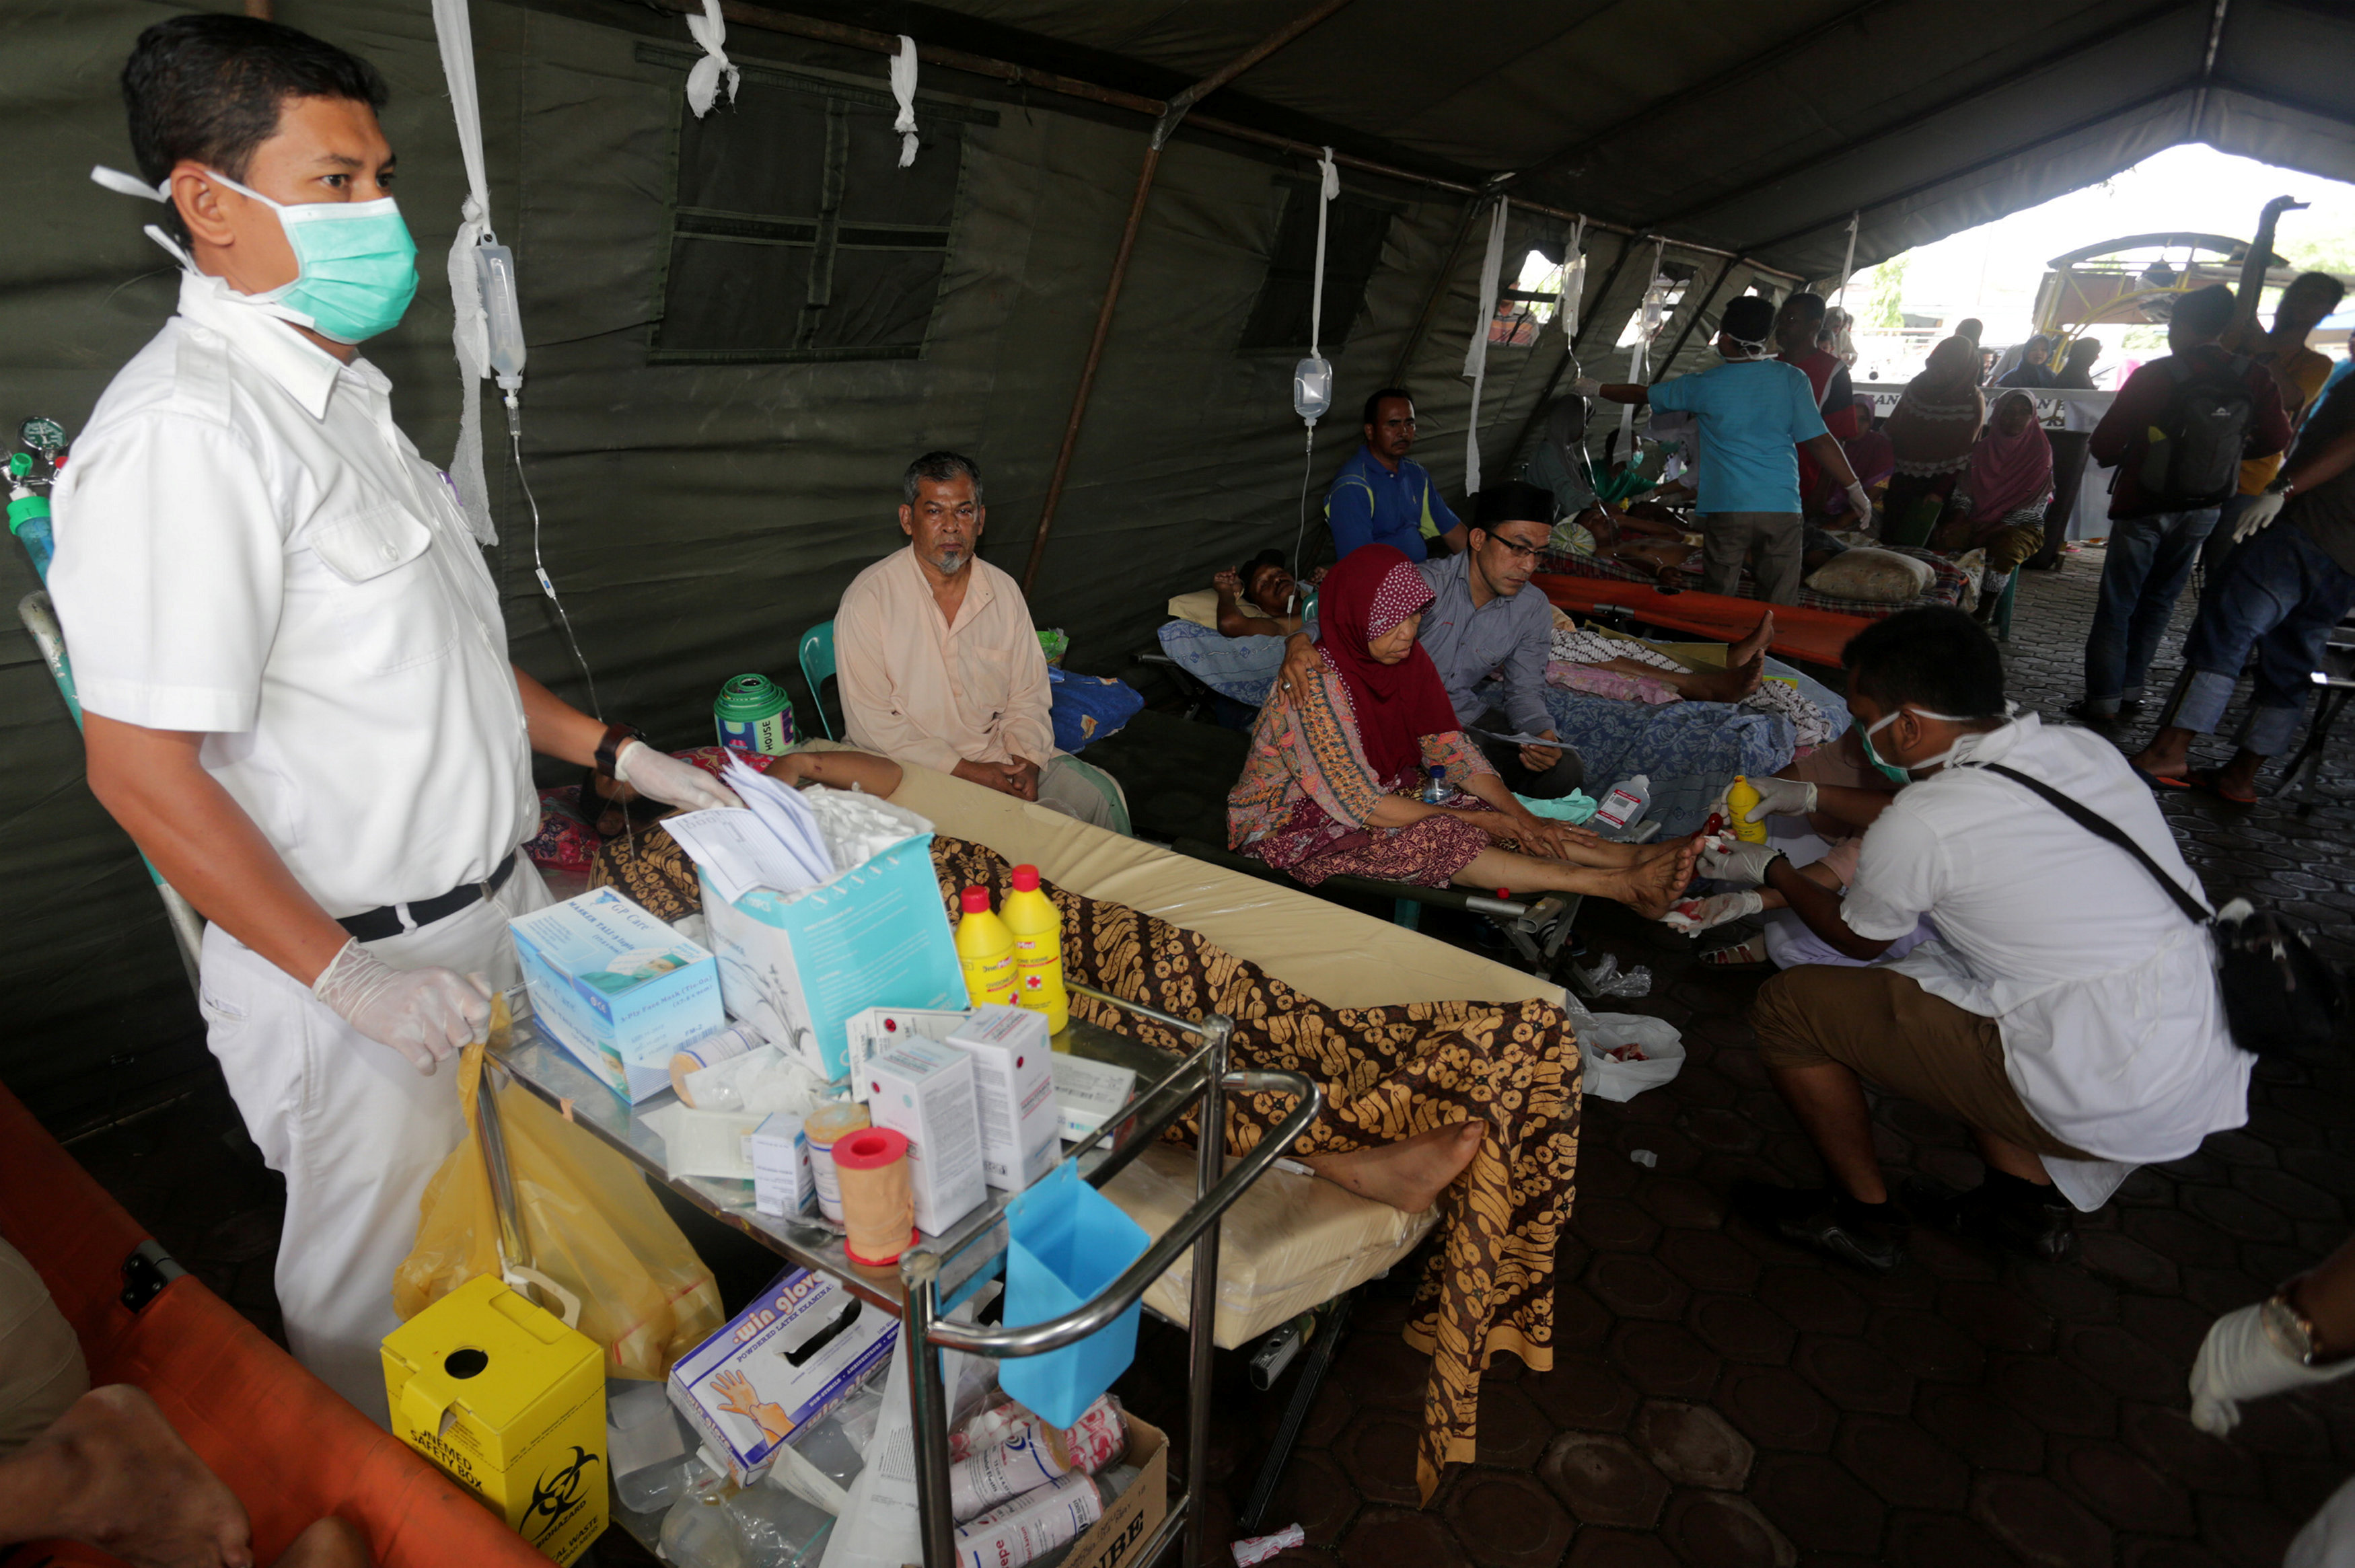 Injured people receive medical attention in an emergency tent at a hospital following an earthquake in Sigli, Pidie regency, in the northern province of Aceh, Indonesia